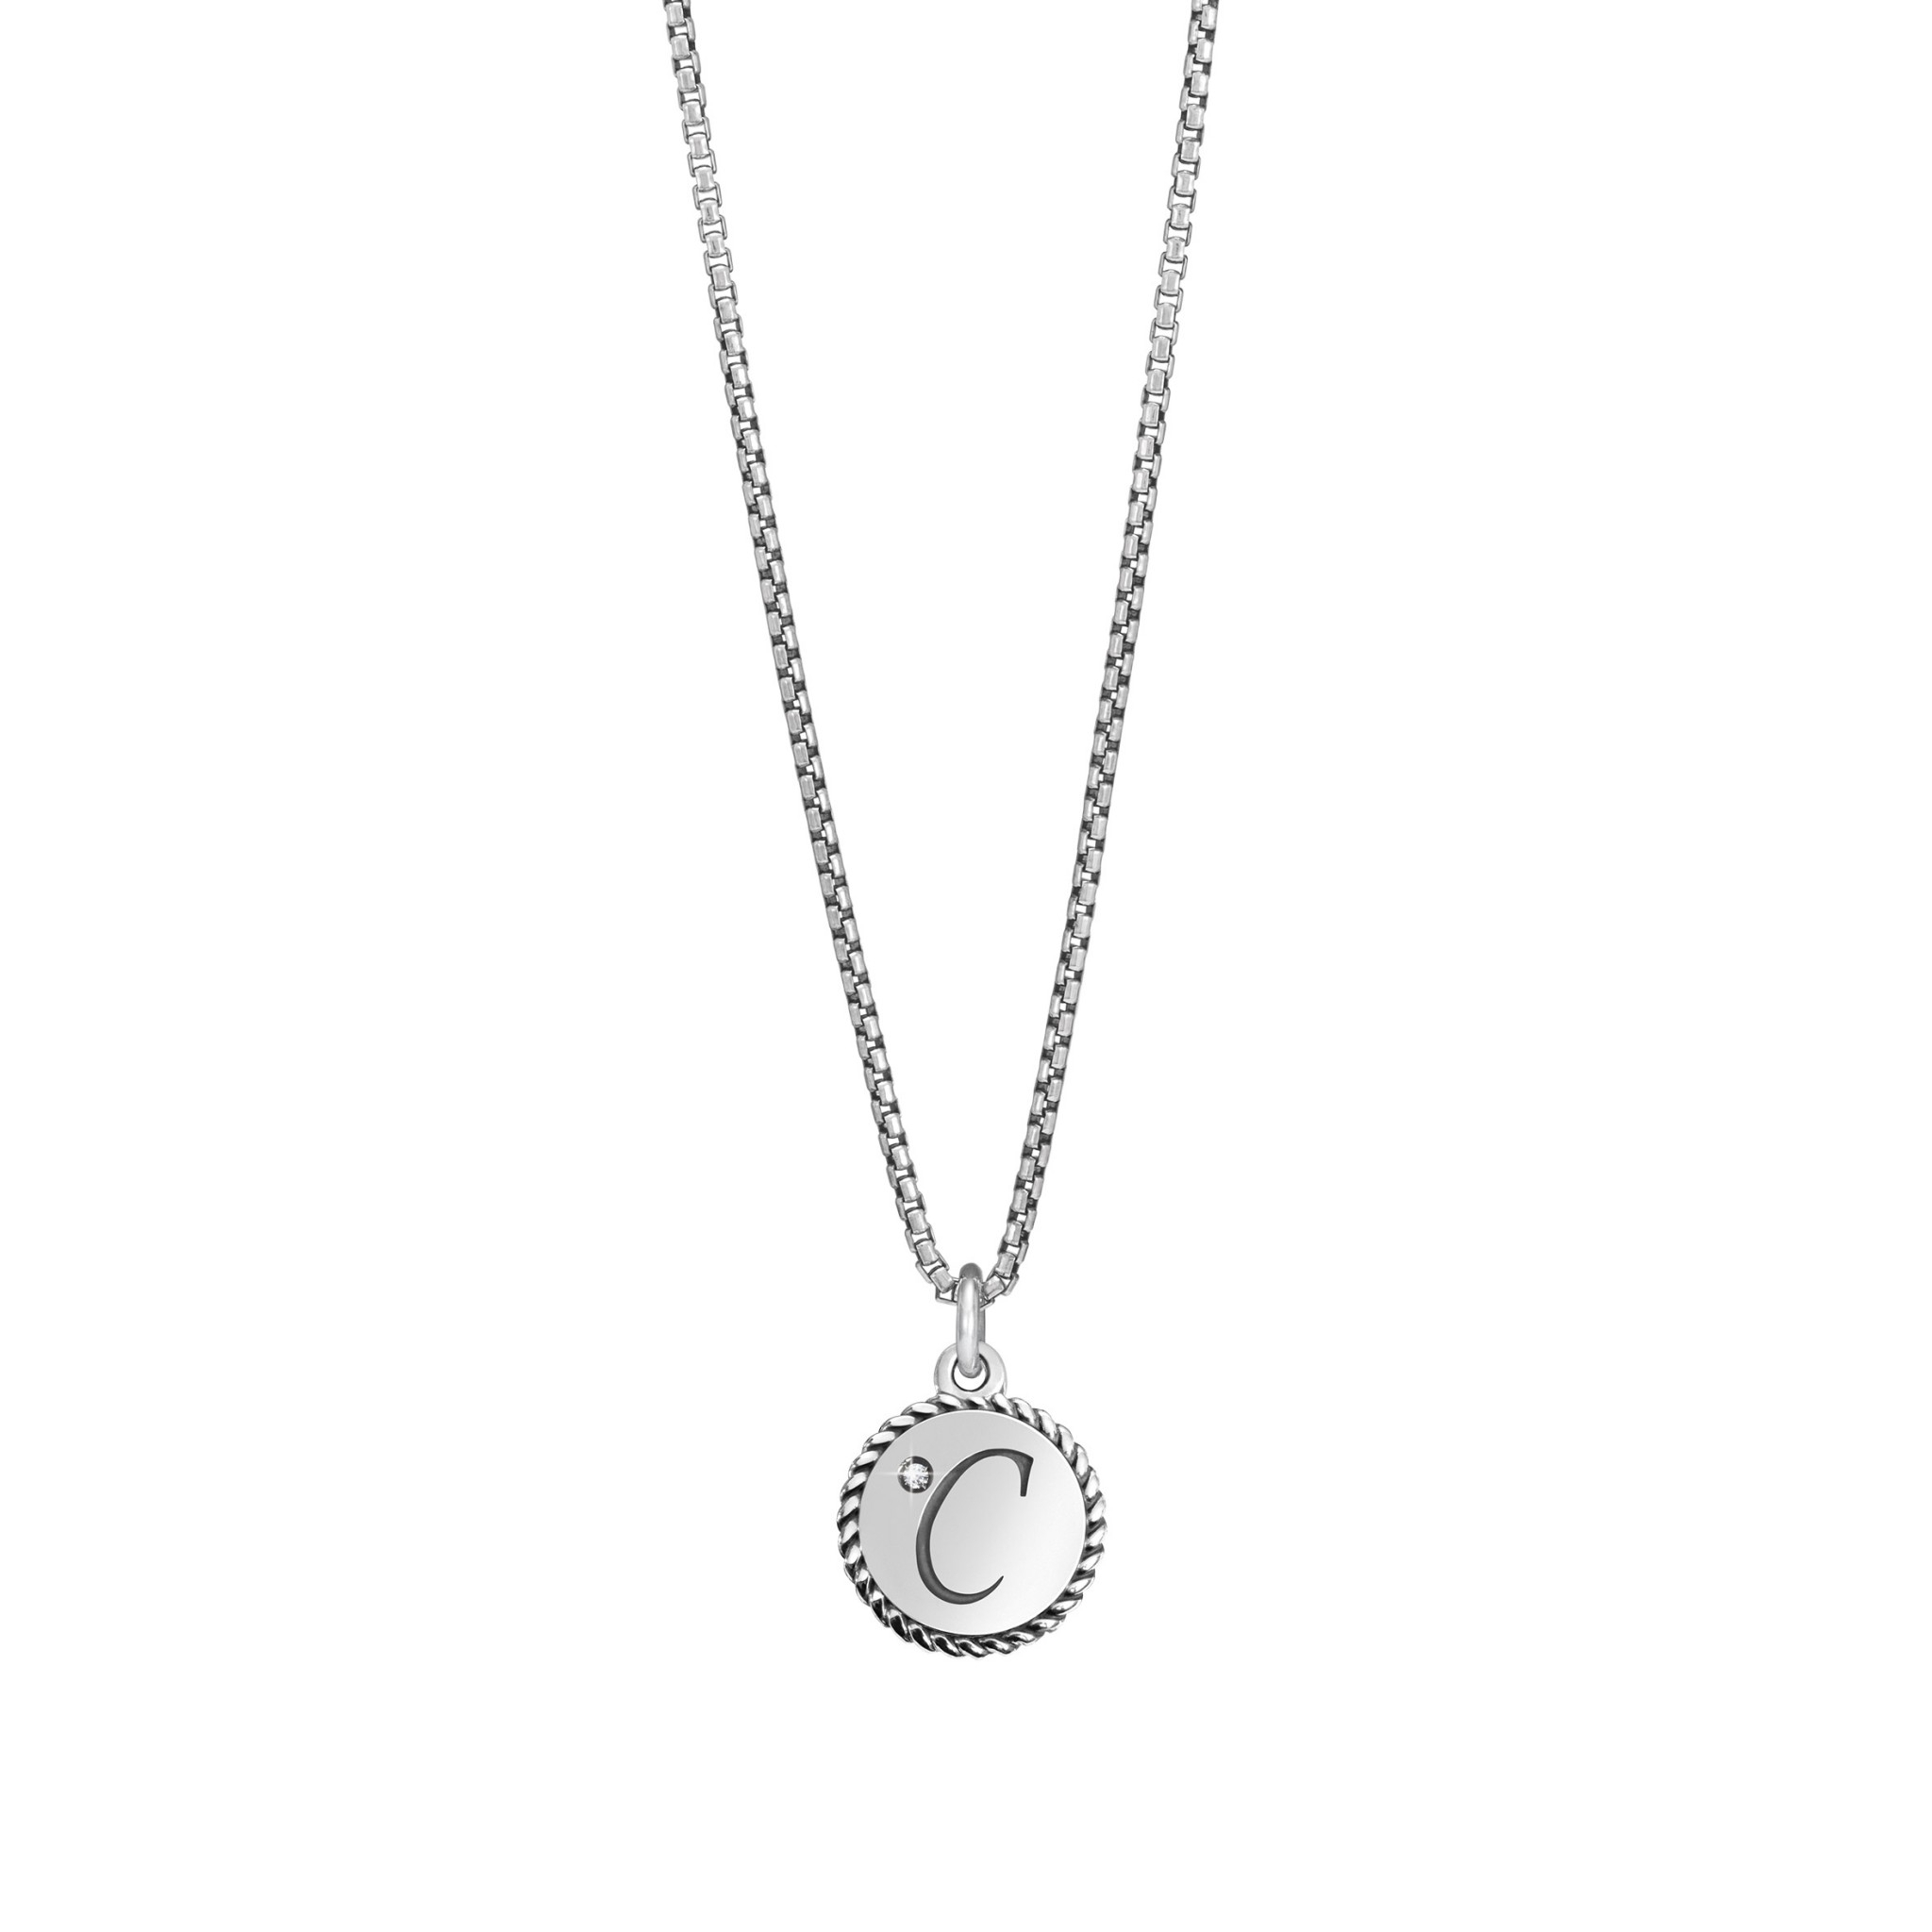 Necklace With Letter C In Silver And Gemstone Intended For Most Recent Letter S Alphabet Locket Element Necklaces (View 12 of 25)